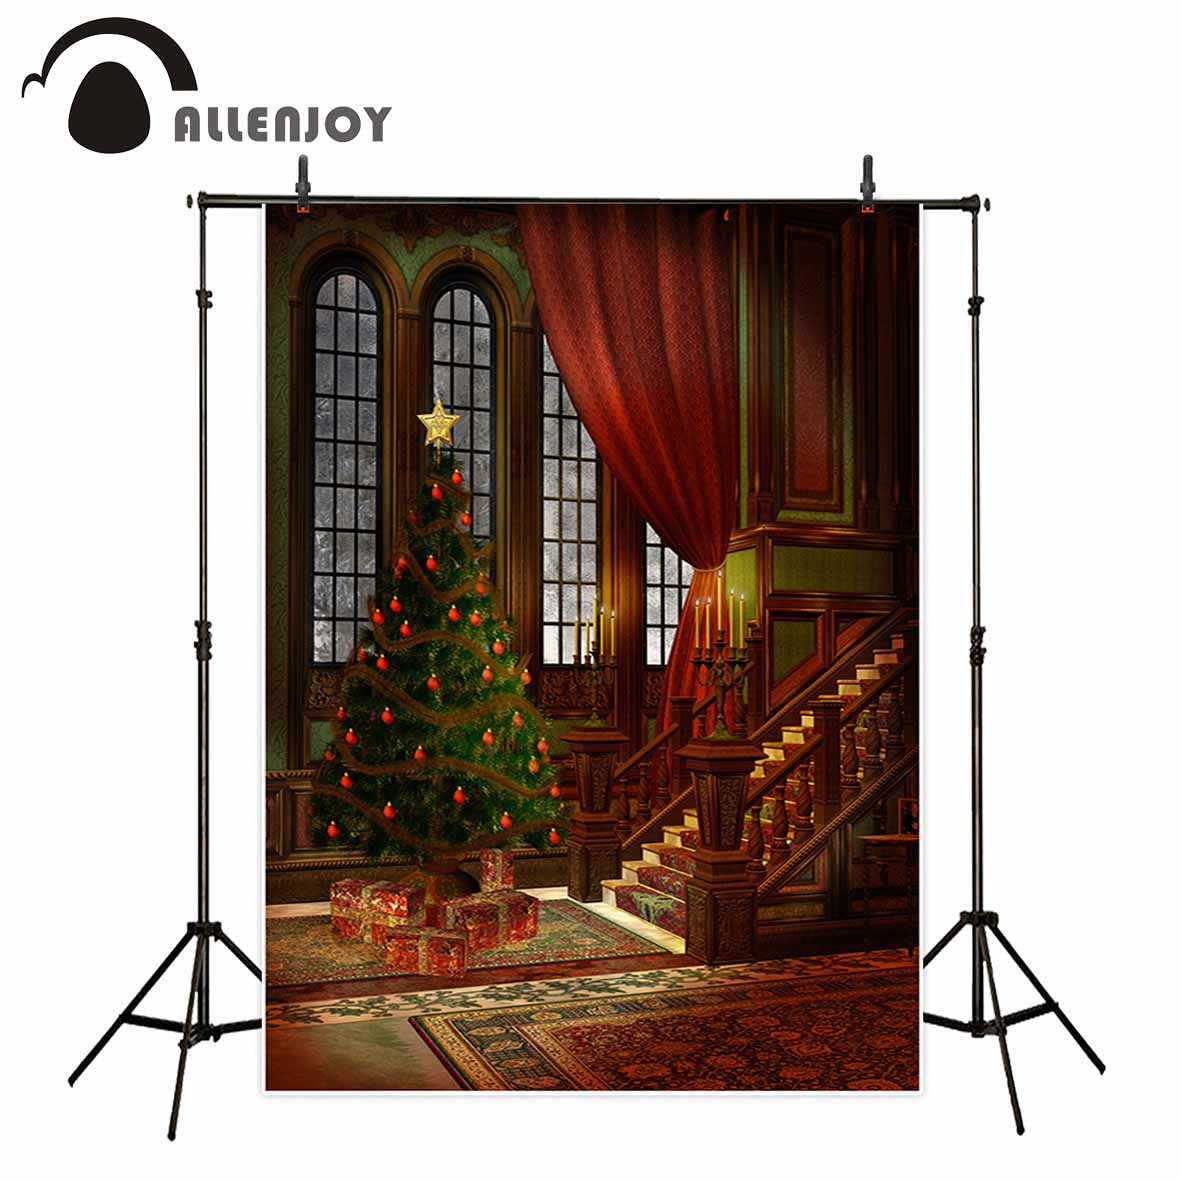 Allenjoy photography backdrop Christmas tree vintage window stair background photobooth original design portrait shooting allenjoy christmas backdrop tree gift chandelier fireplace cute professional background backdrop for photo studio